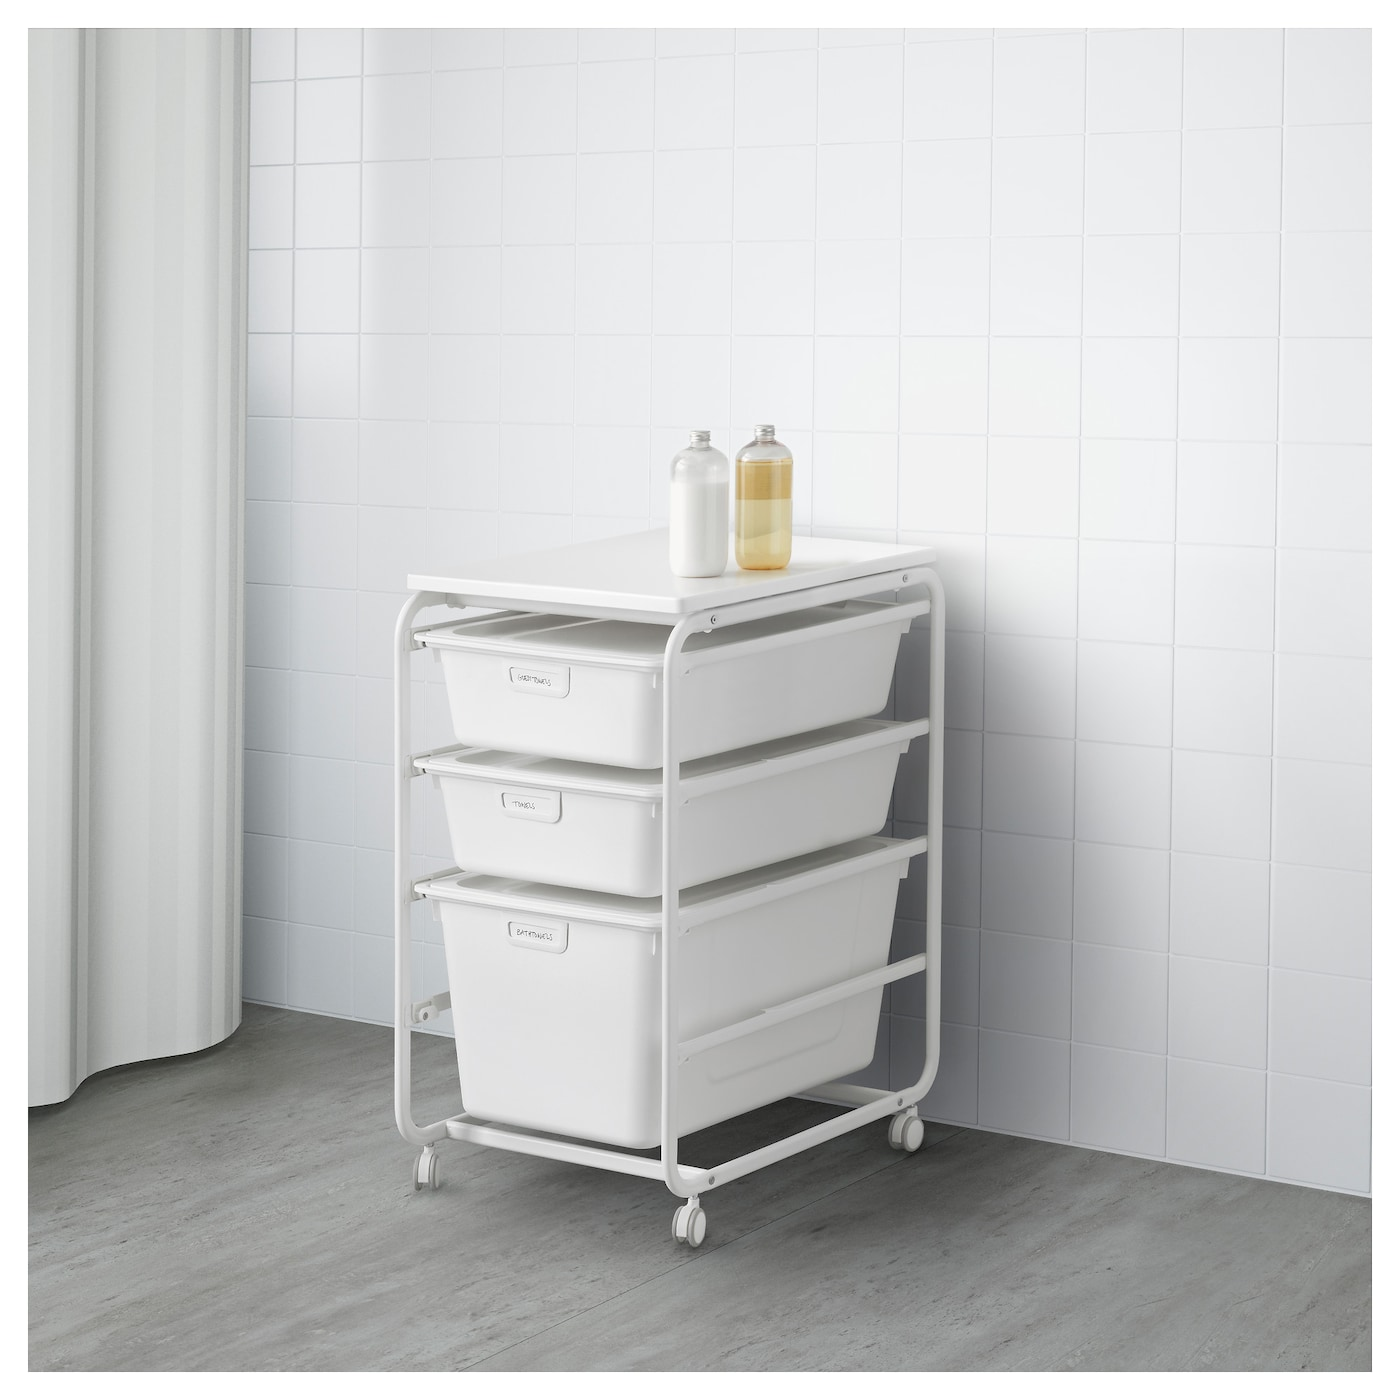 IKEA ALGOT frame/3 boxes/top shelf Can also be used in bathrooms and other damp areas indoors.